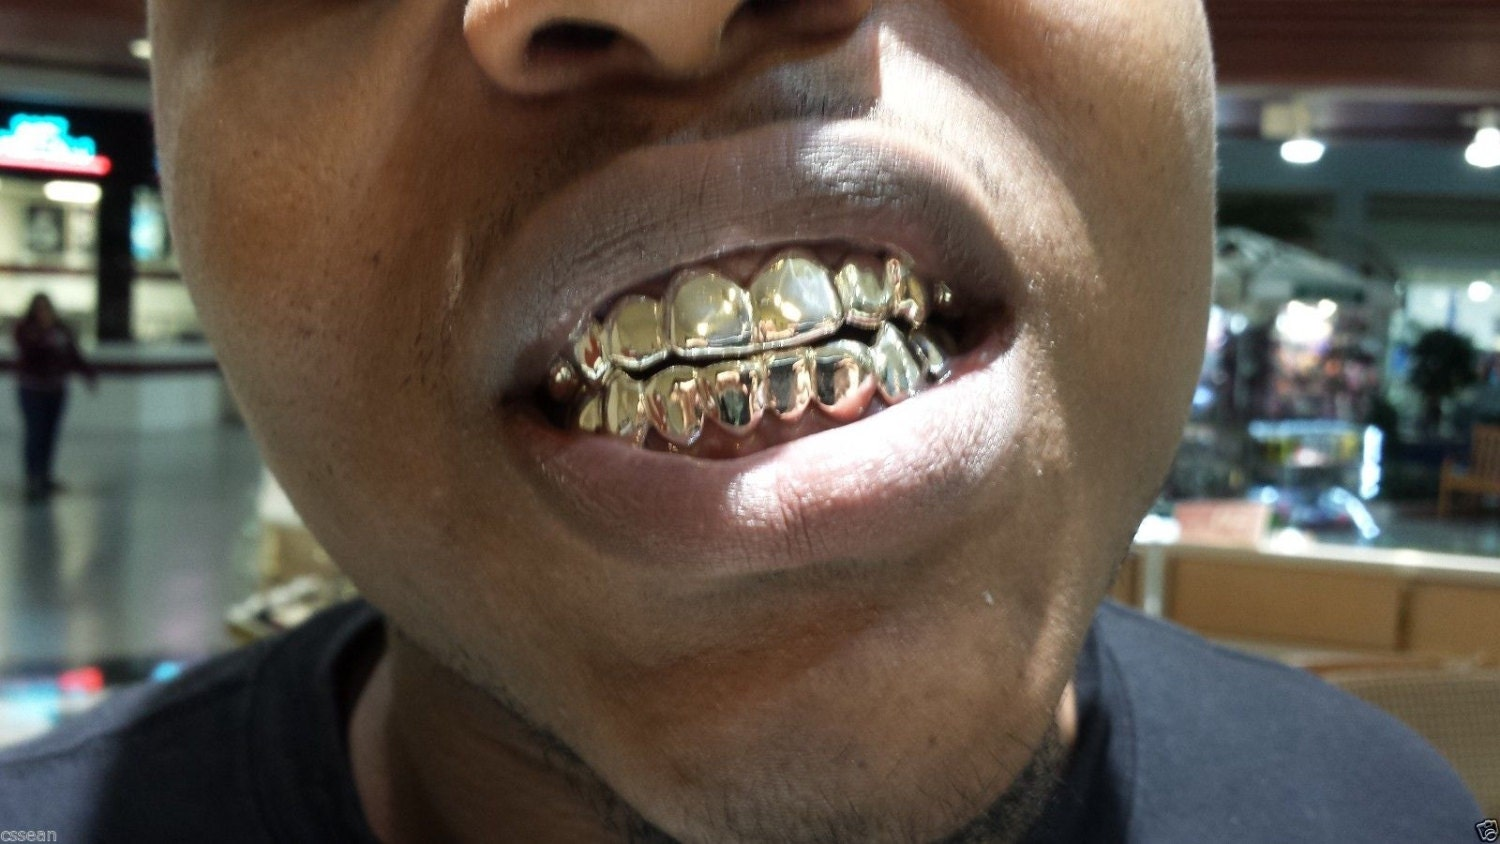 925 Sterling Silver Custom fit Grillz Plain Silver teeth REAL Grill Grillz. 664e93526941